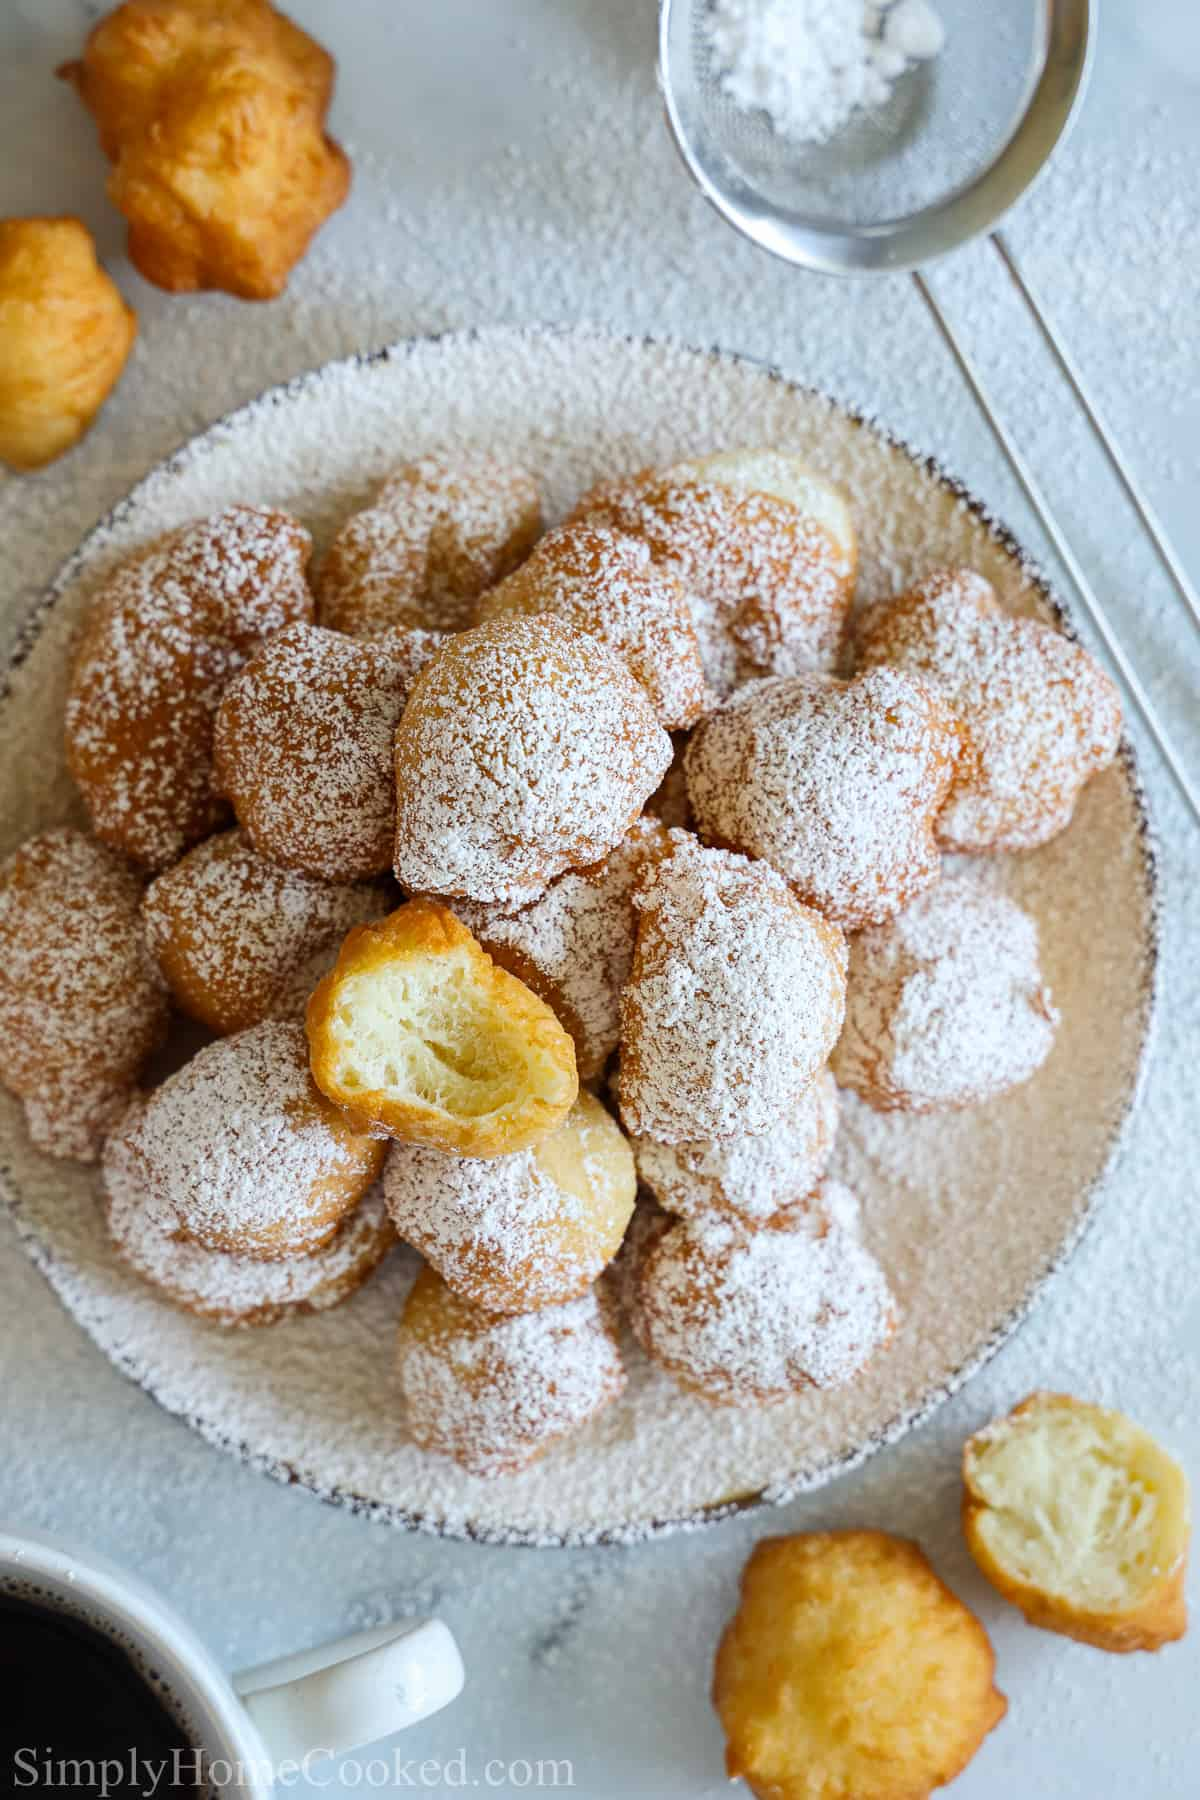 Plate of powdered sugar dusted zeppoles with one bitten, and some zeppoles and a small sieve to the side on a white background.